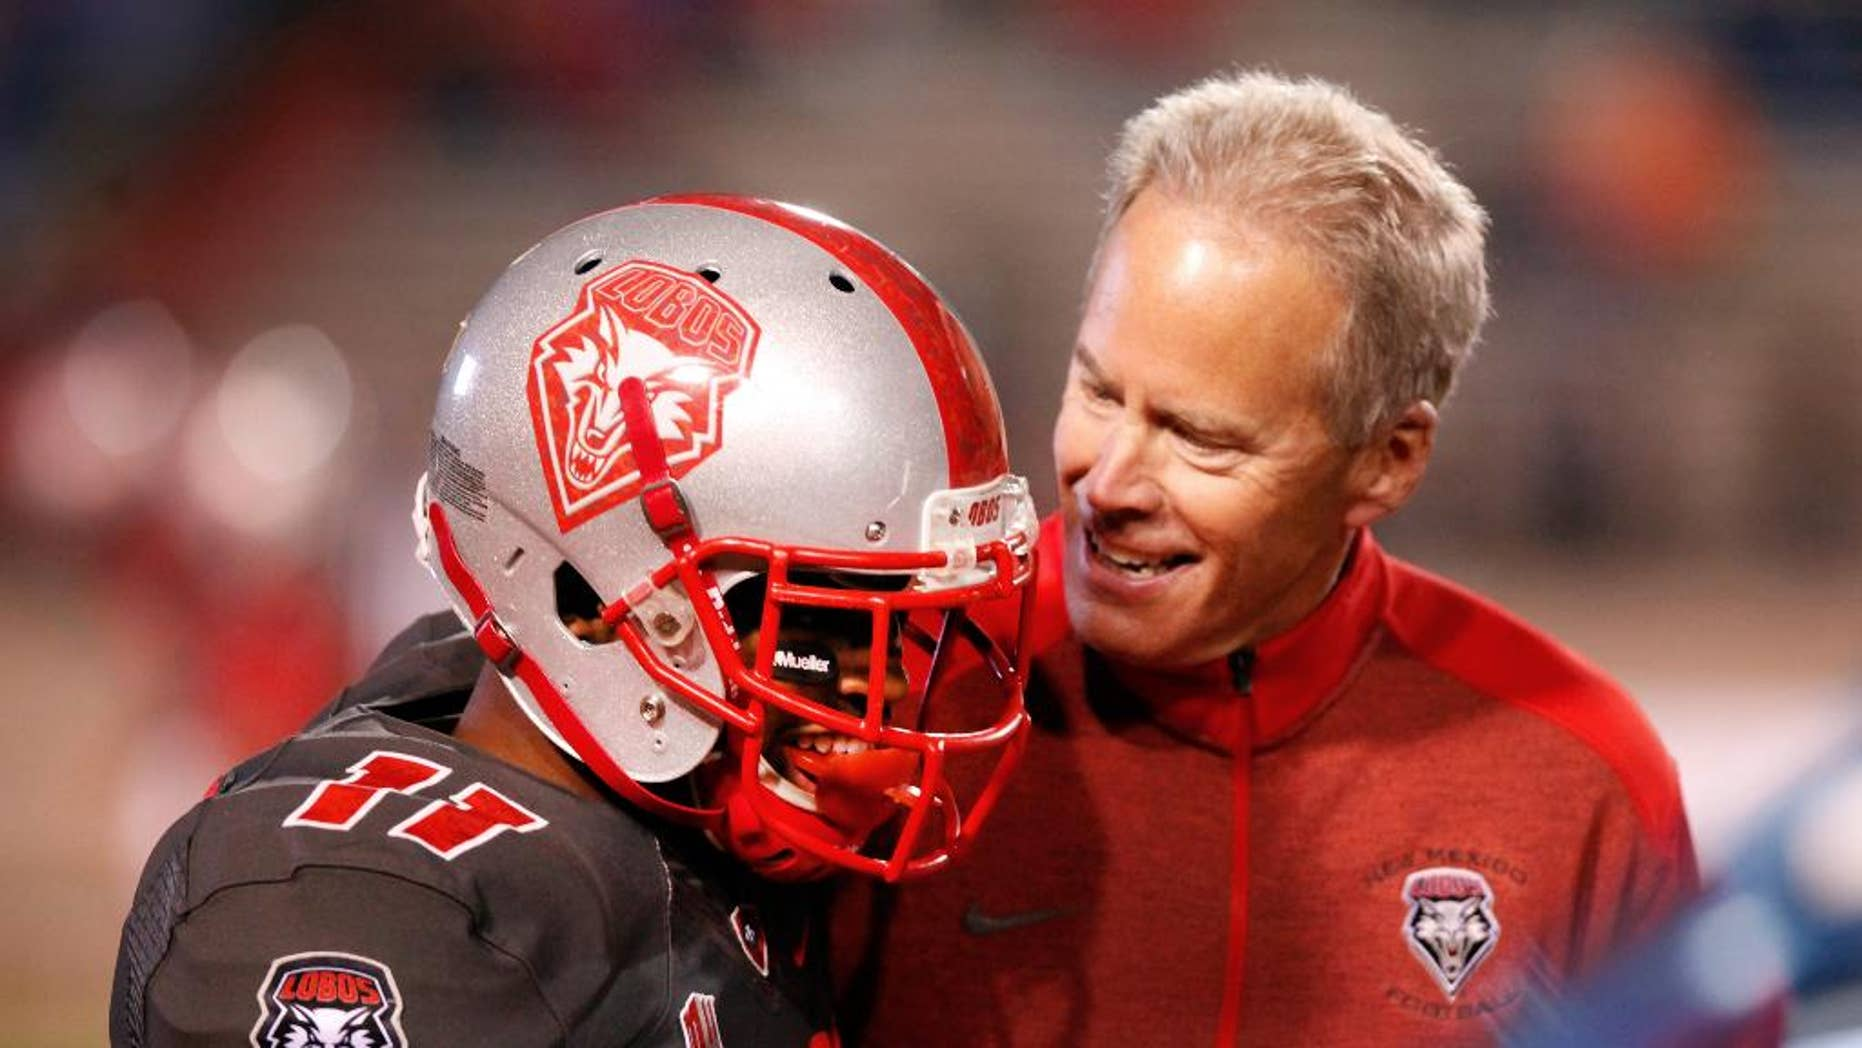 Bob Davie has been the head coach at New Mexico since 2012.